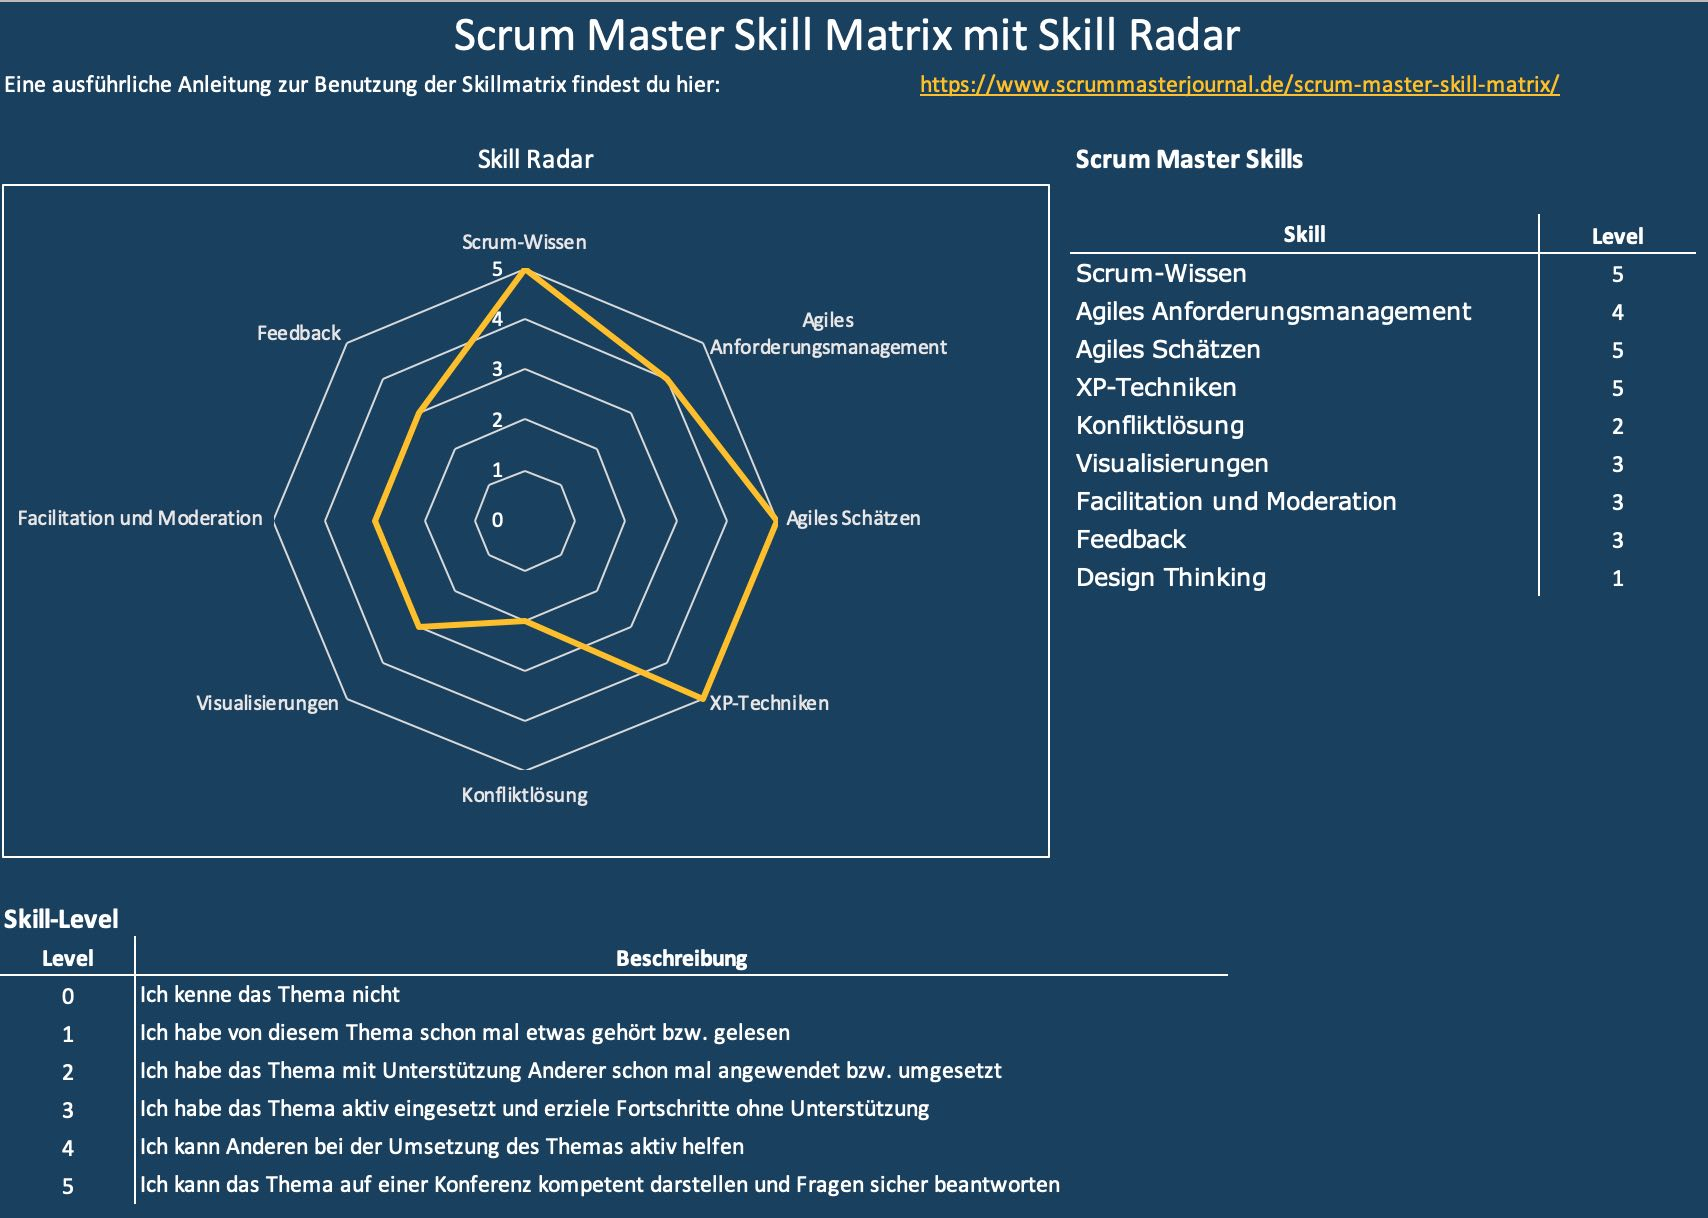 Scrum Master Skill Matrix mit Skill Radar